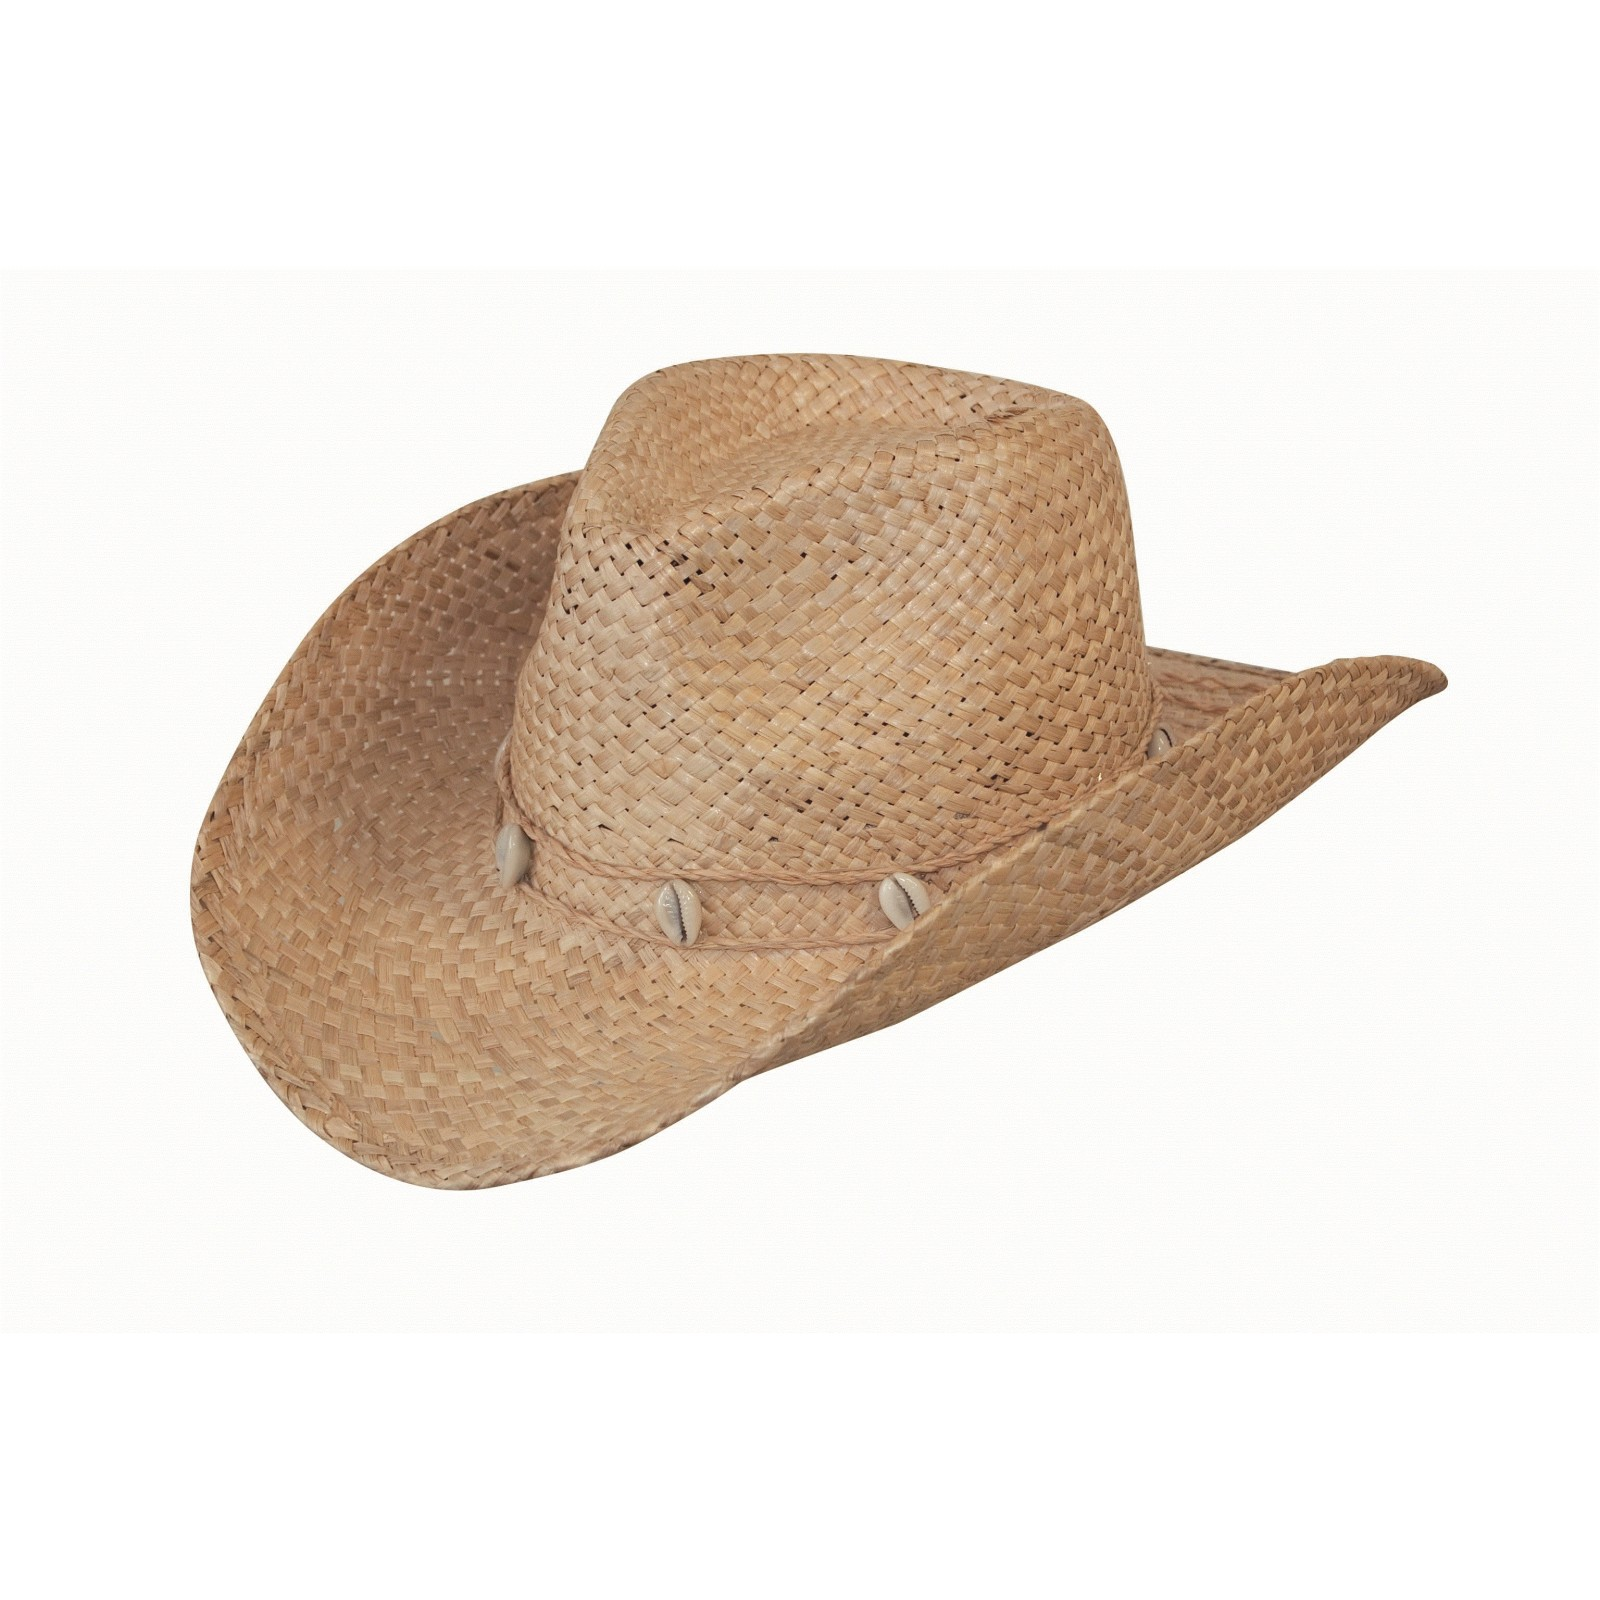 Lennox straw hat